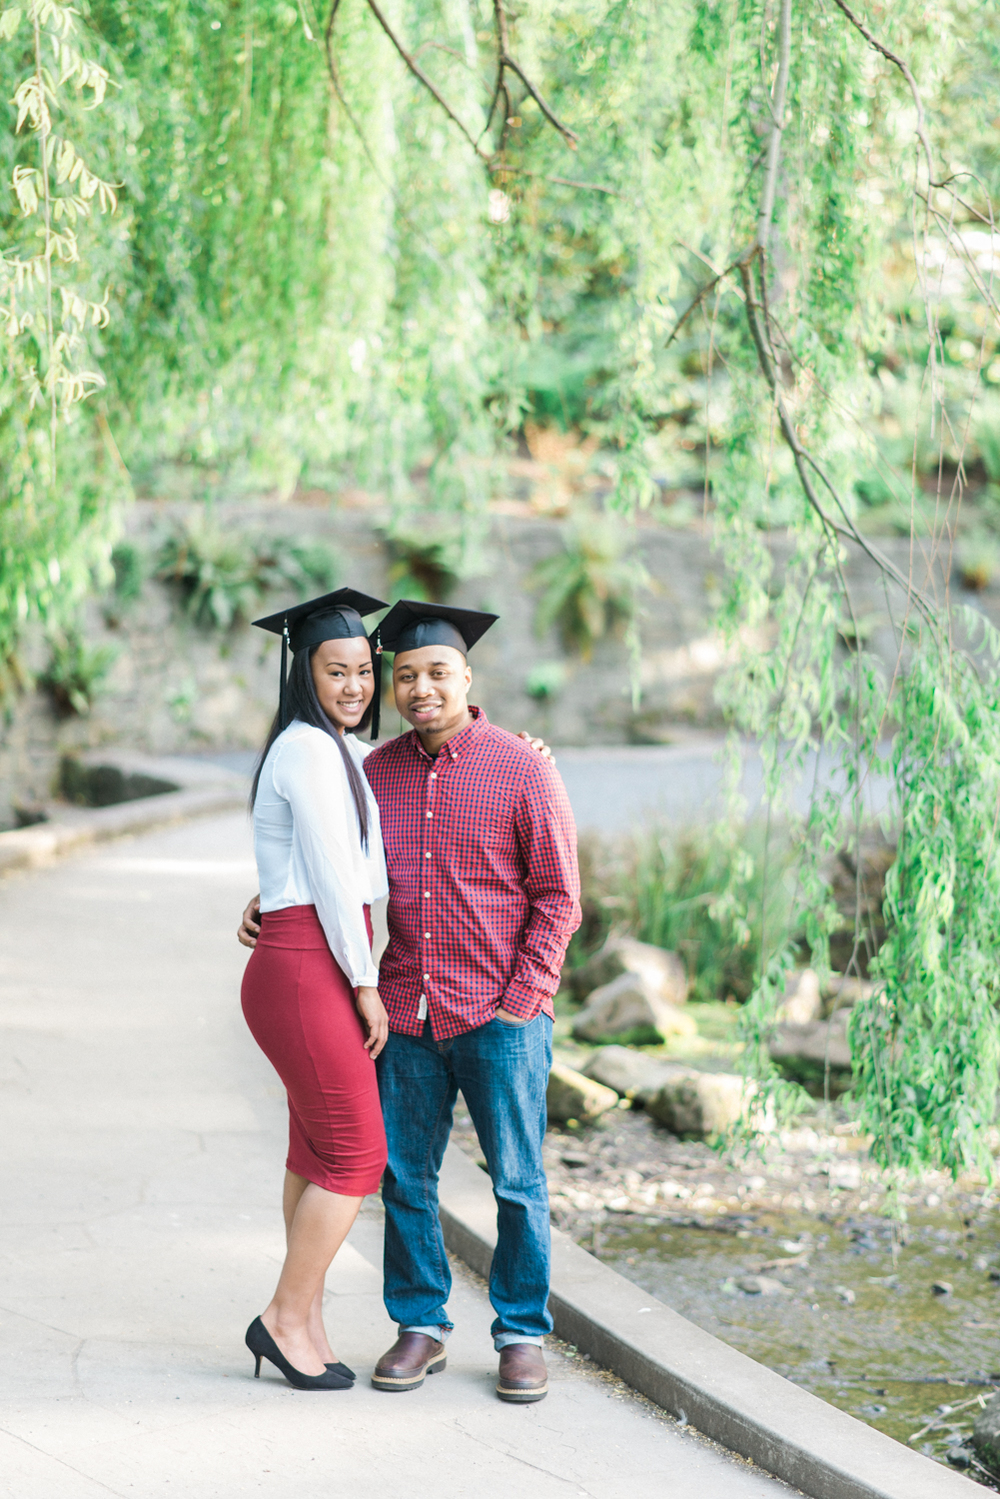 portland-engagement-photographer-wsu-graduation-portrait-crystal-springs-rhododendron-garden-shelley-marie-photo-5